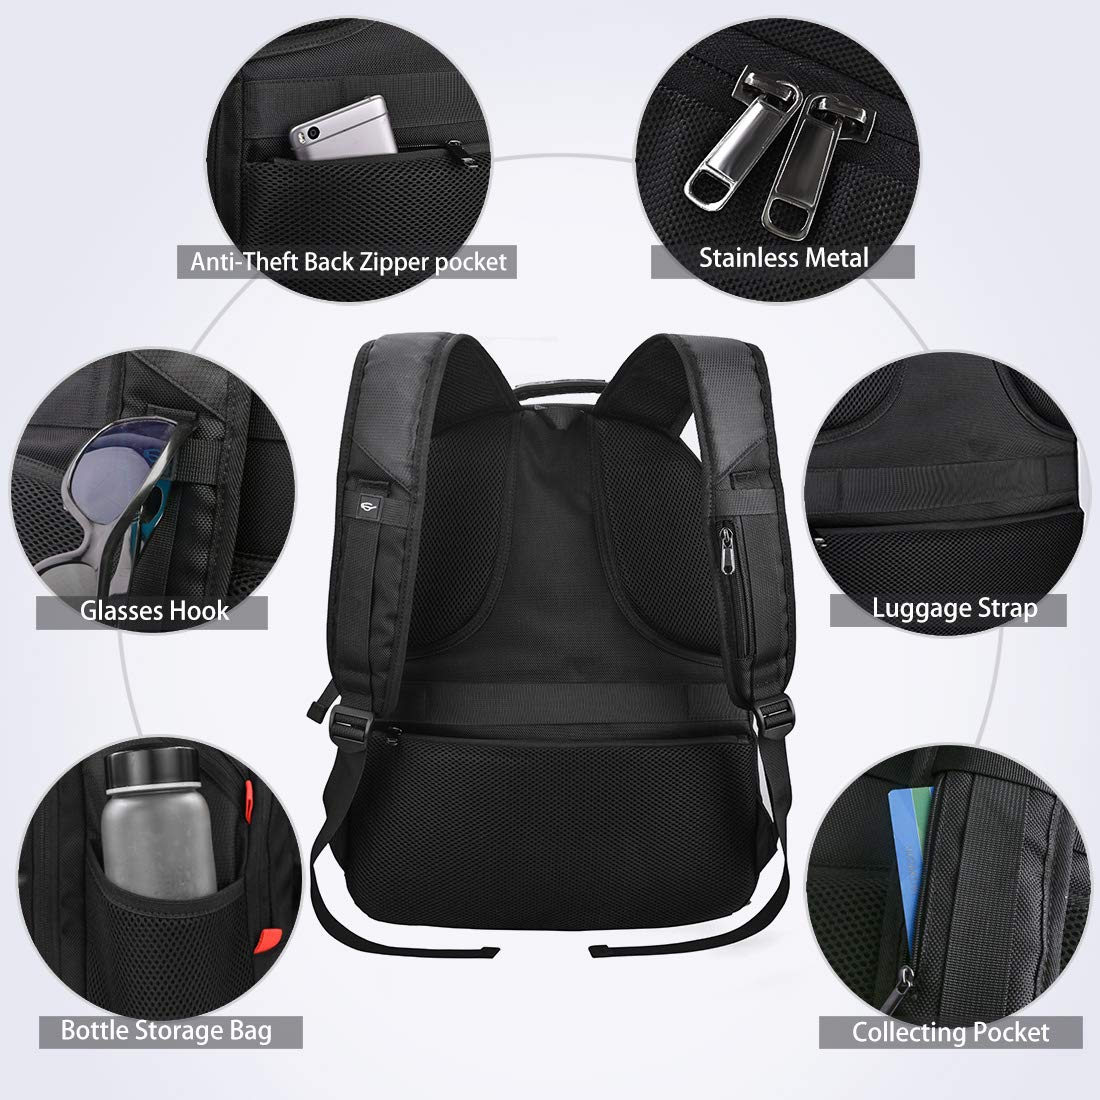 Laptop Backpack Extra Large Travel Backpacks for Men Women Waterproof TSA Friendly Business Traveling Computer Bag College School Bookbag with USB Charging Port Fit 17.3 Inch Laptop Notebook Black NUBILY